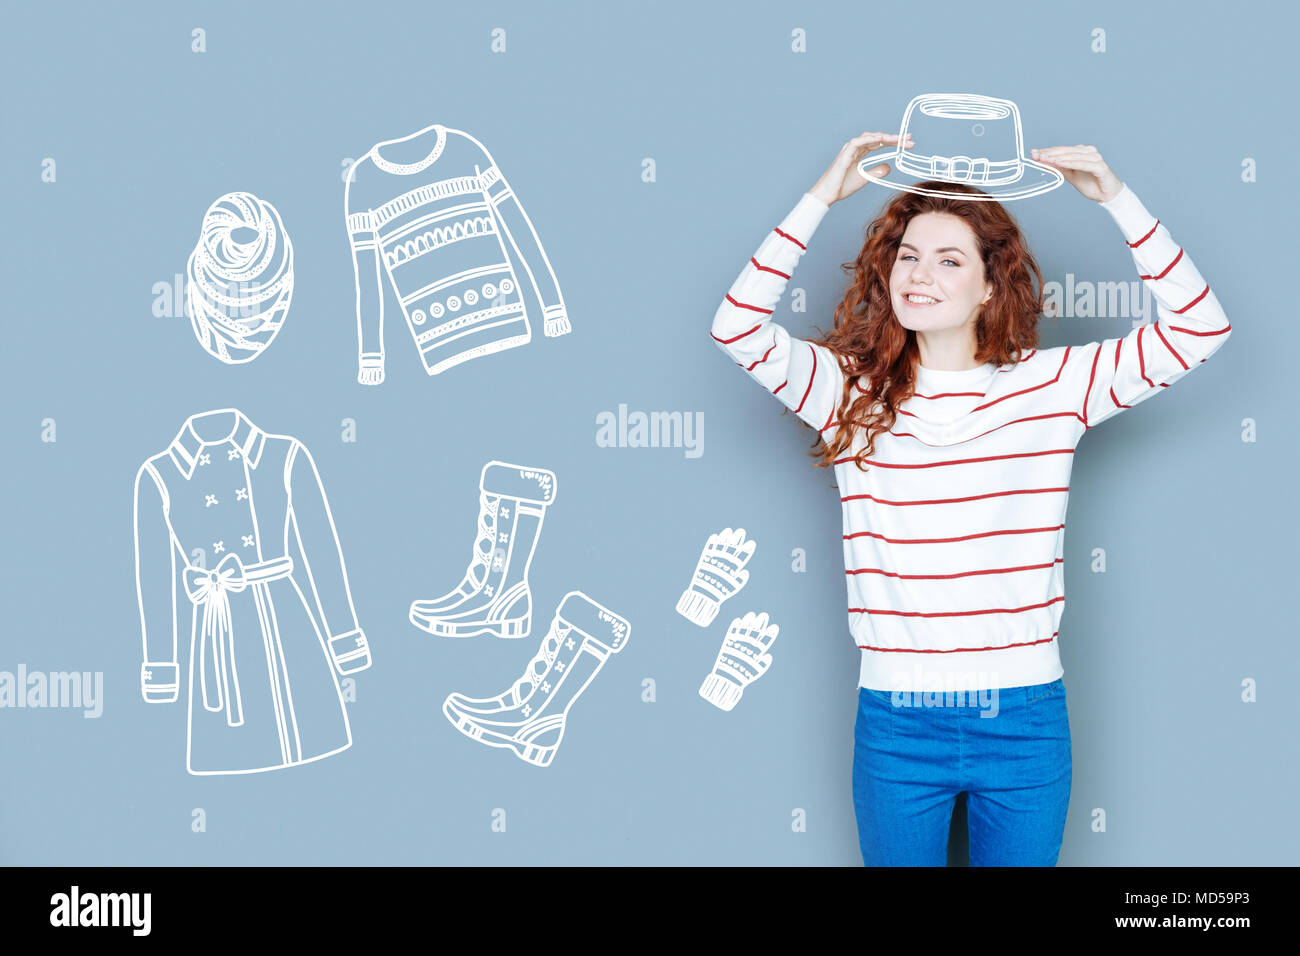 Positive shop assistant smiling while being at work - Stock Image